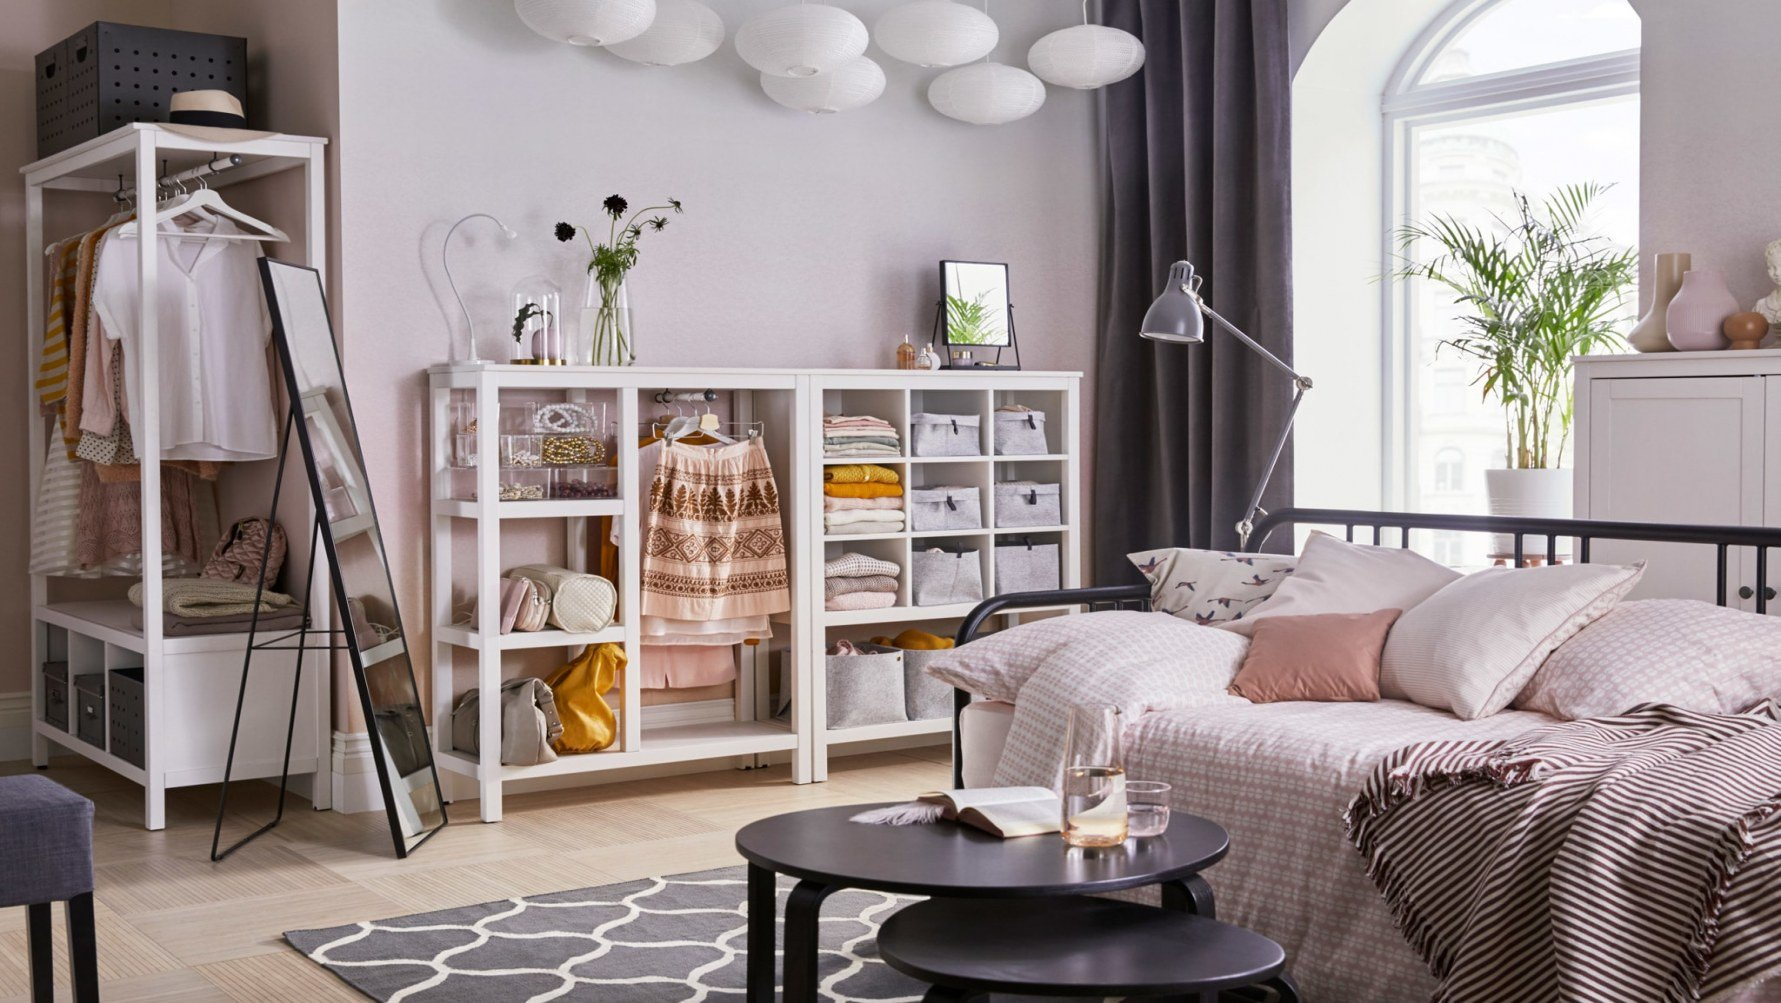 Ikea White Bedroom Furniture Luxury Pink and Gray Bedroom White Ikea Bedroom Furniture